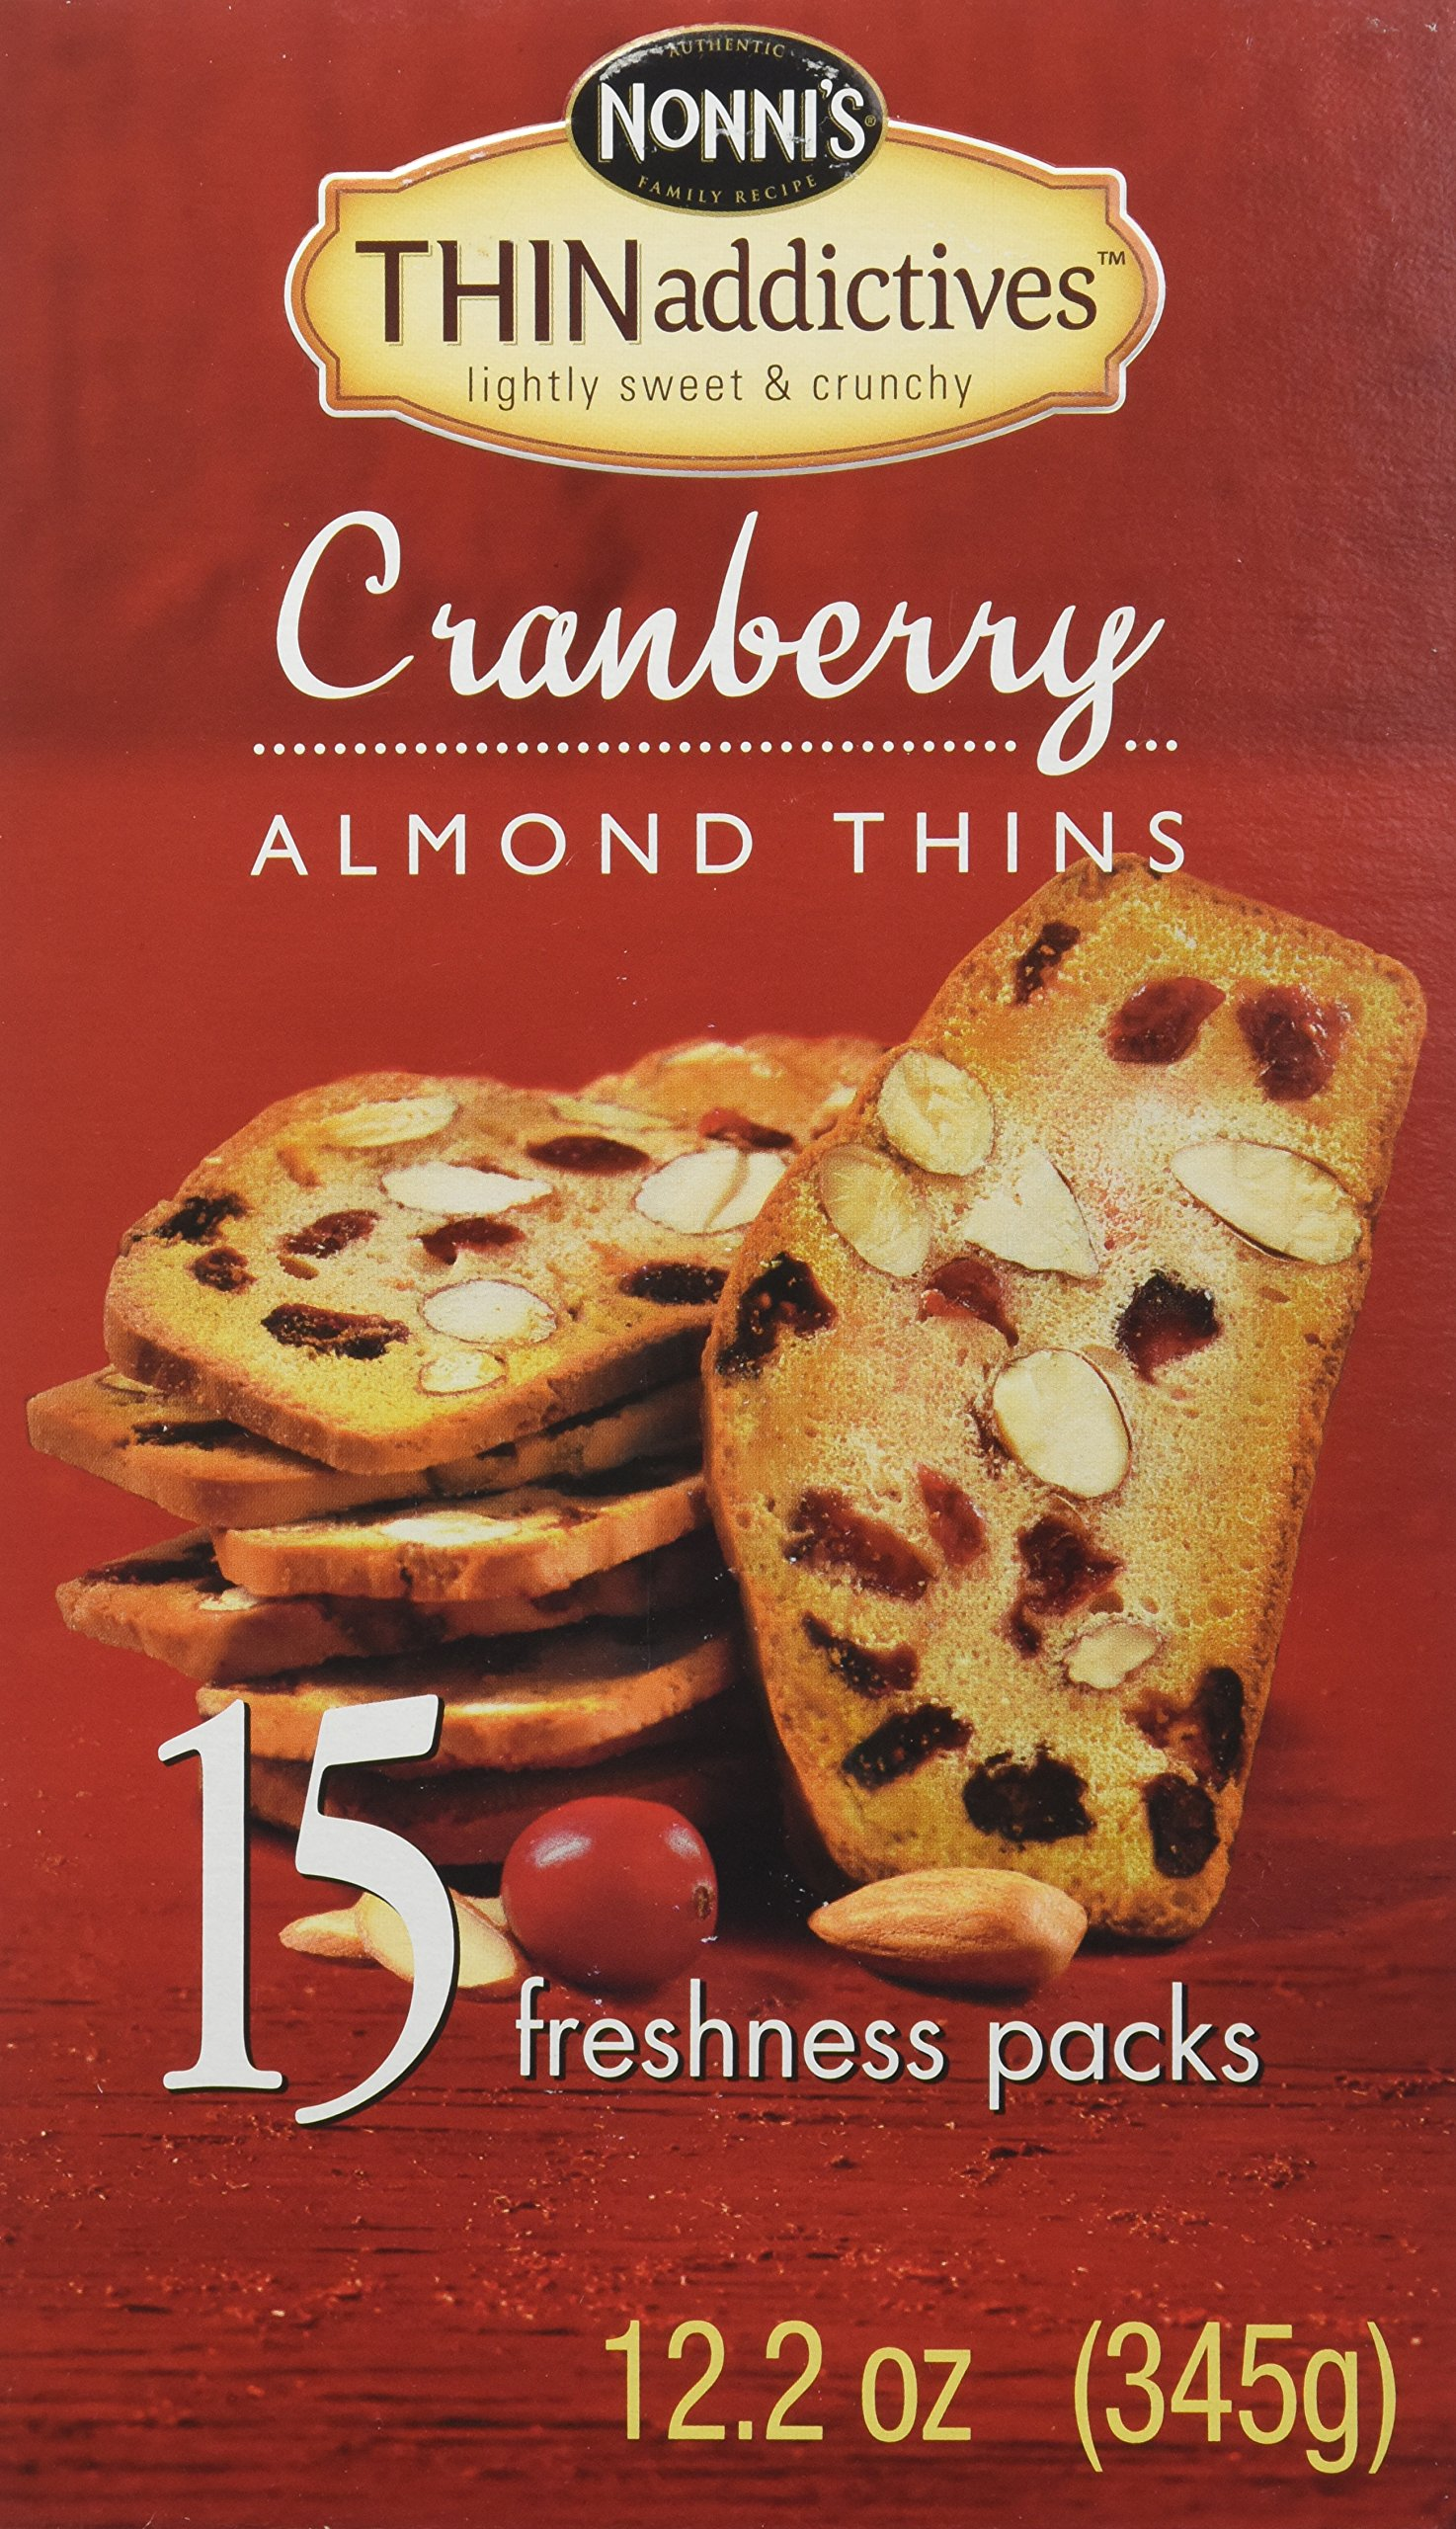 THIN Addictive Cranberry Almond Thins 15 Packs of crunchy cookies (12.2 oz) by THIN Addictives